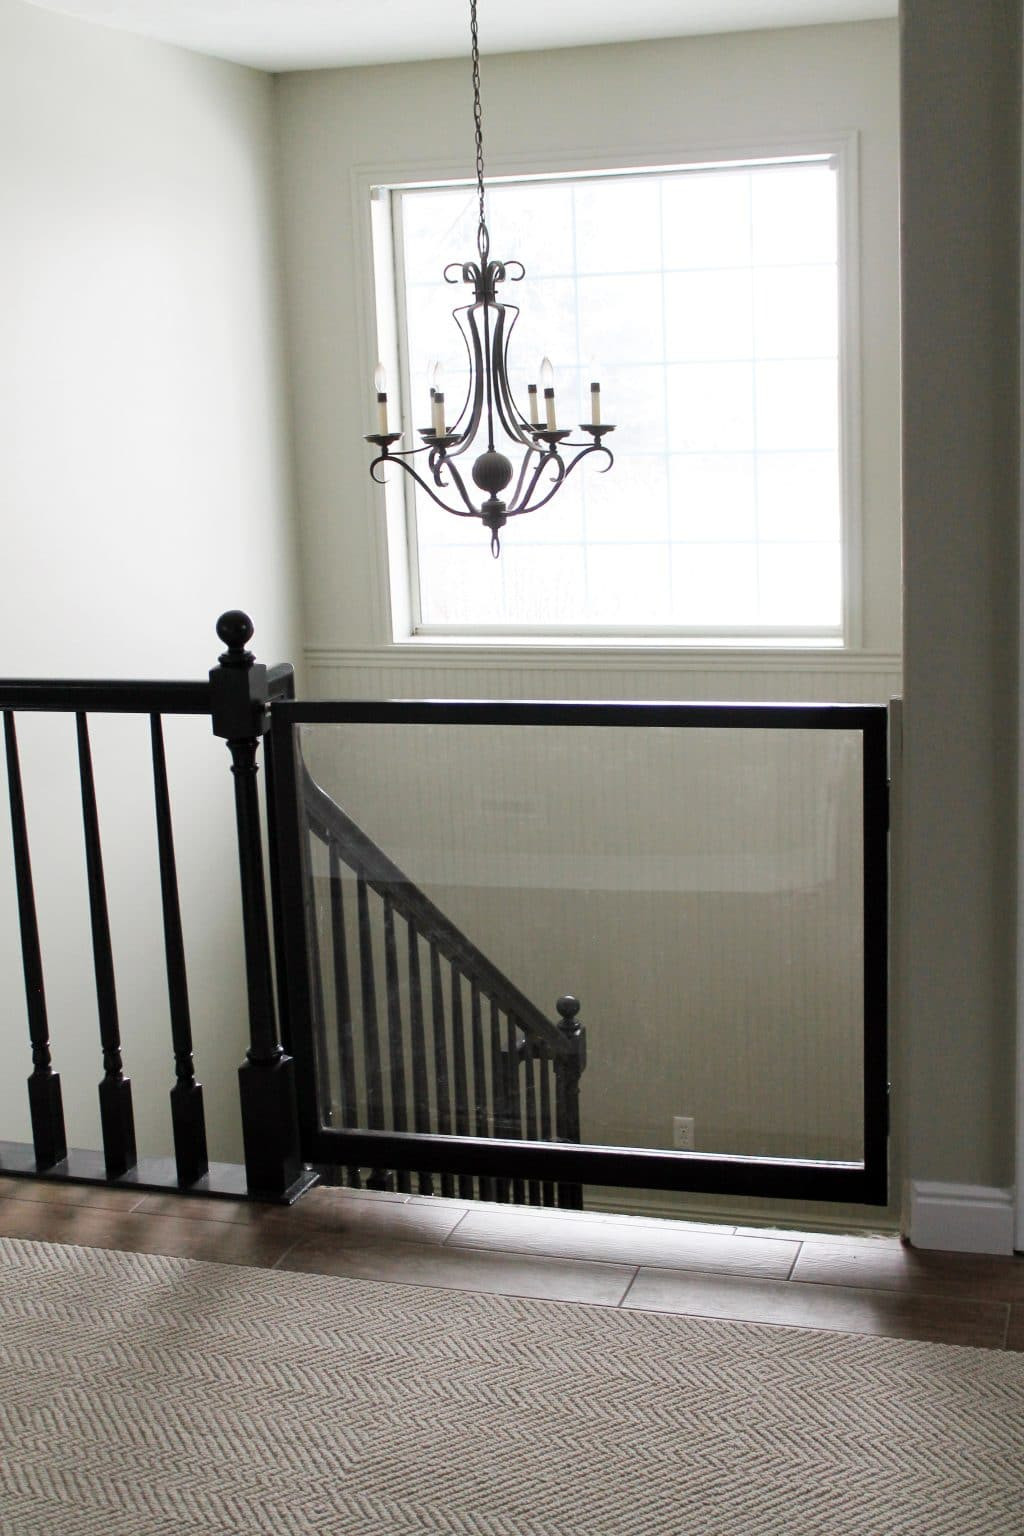 Best ideas about DIY Baby Gate For Stairs . Save or Pin A DIY Baby Gate Chris Loves Julia Now.